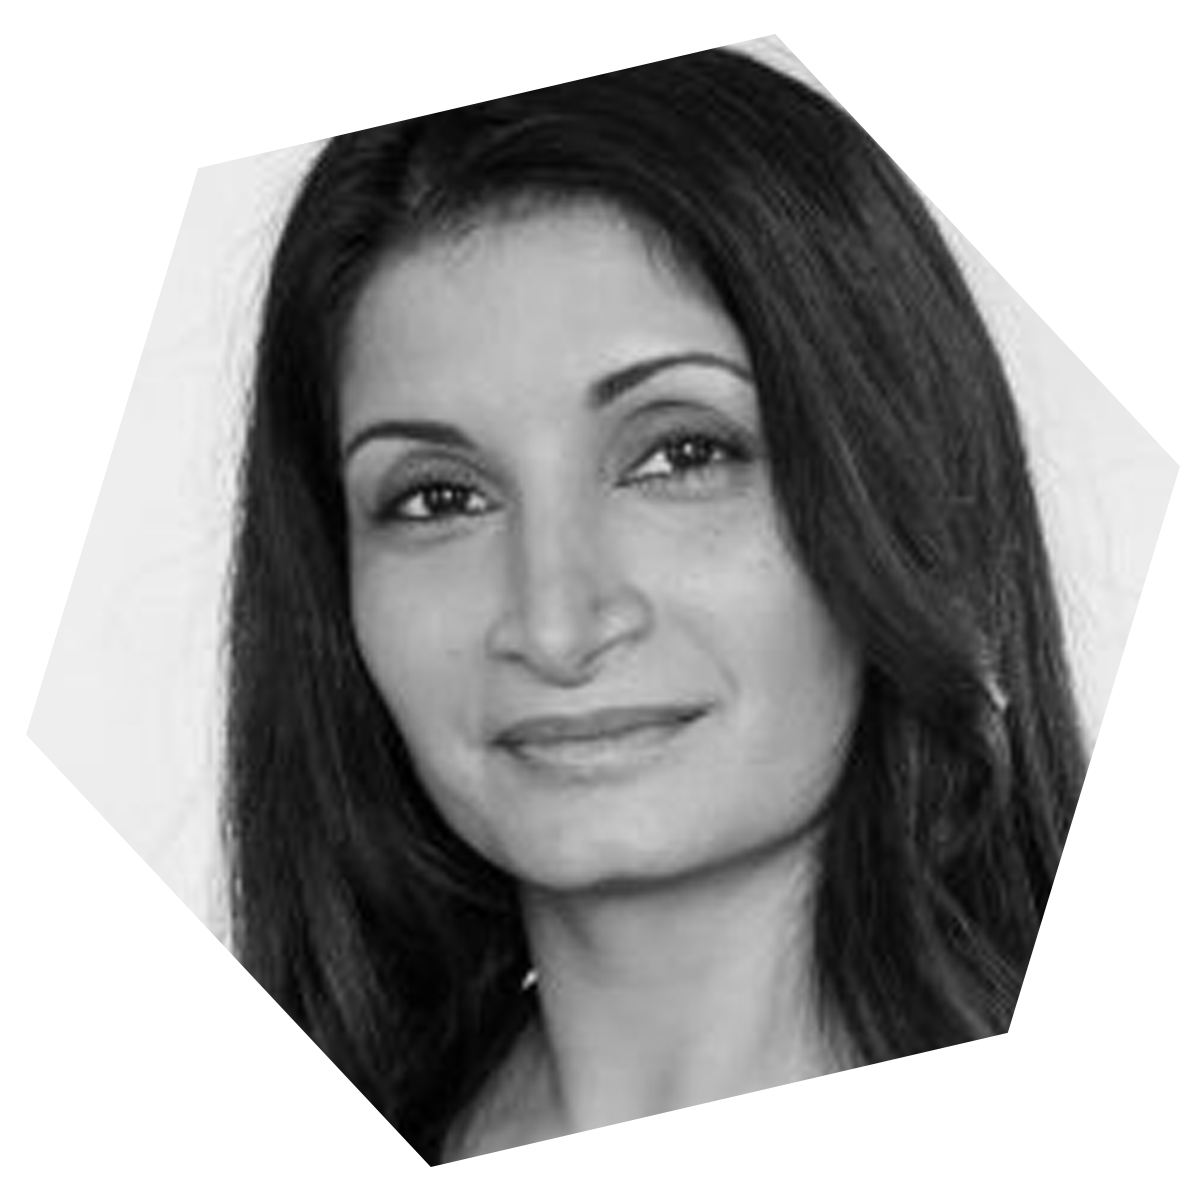 Indu Subaiya - is a visionary healthcare leader whose work builds community, creates dialogue and inspires us to radically rethink how our health shapes our lives. Indu co-founded and served as CEO of Health 2.0.